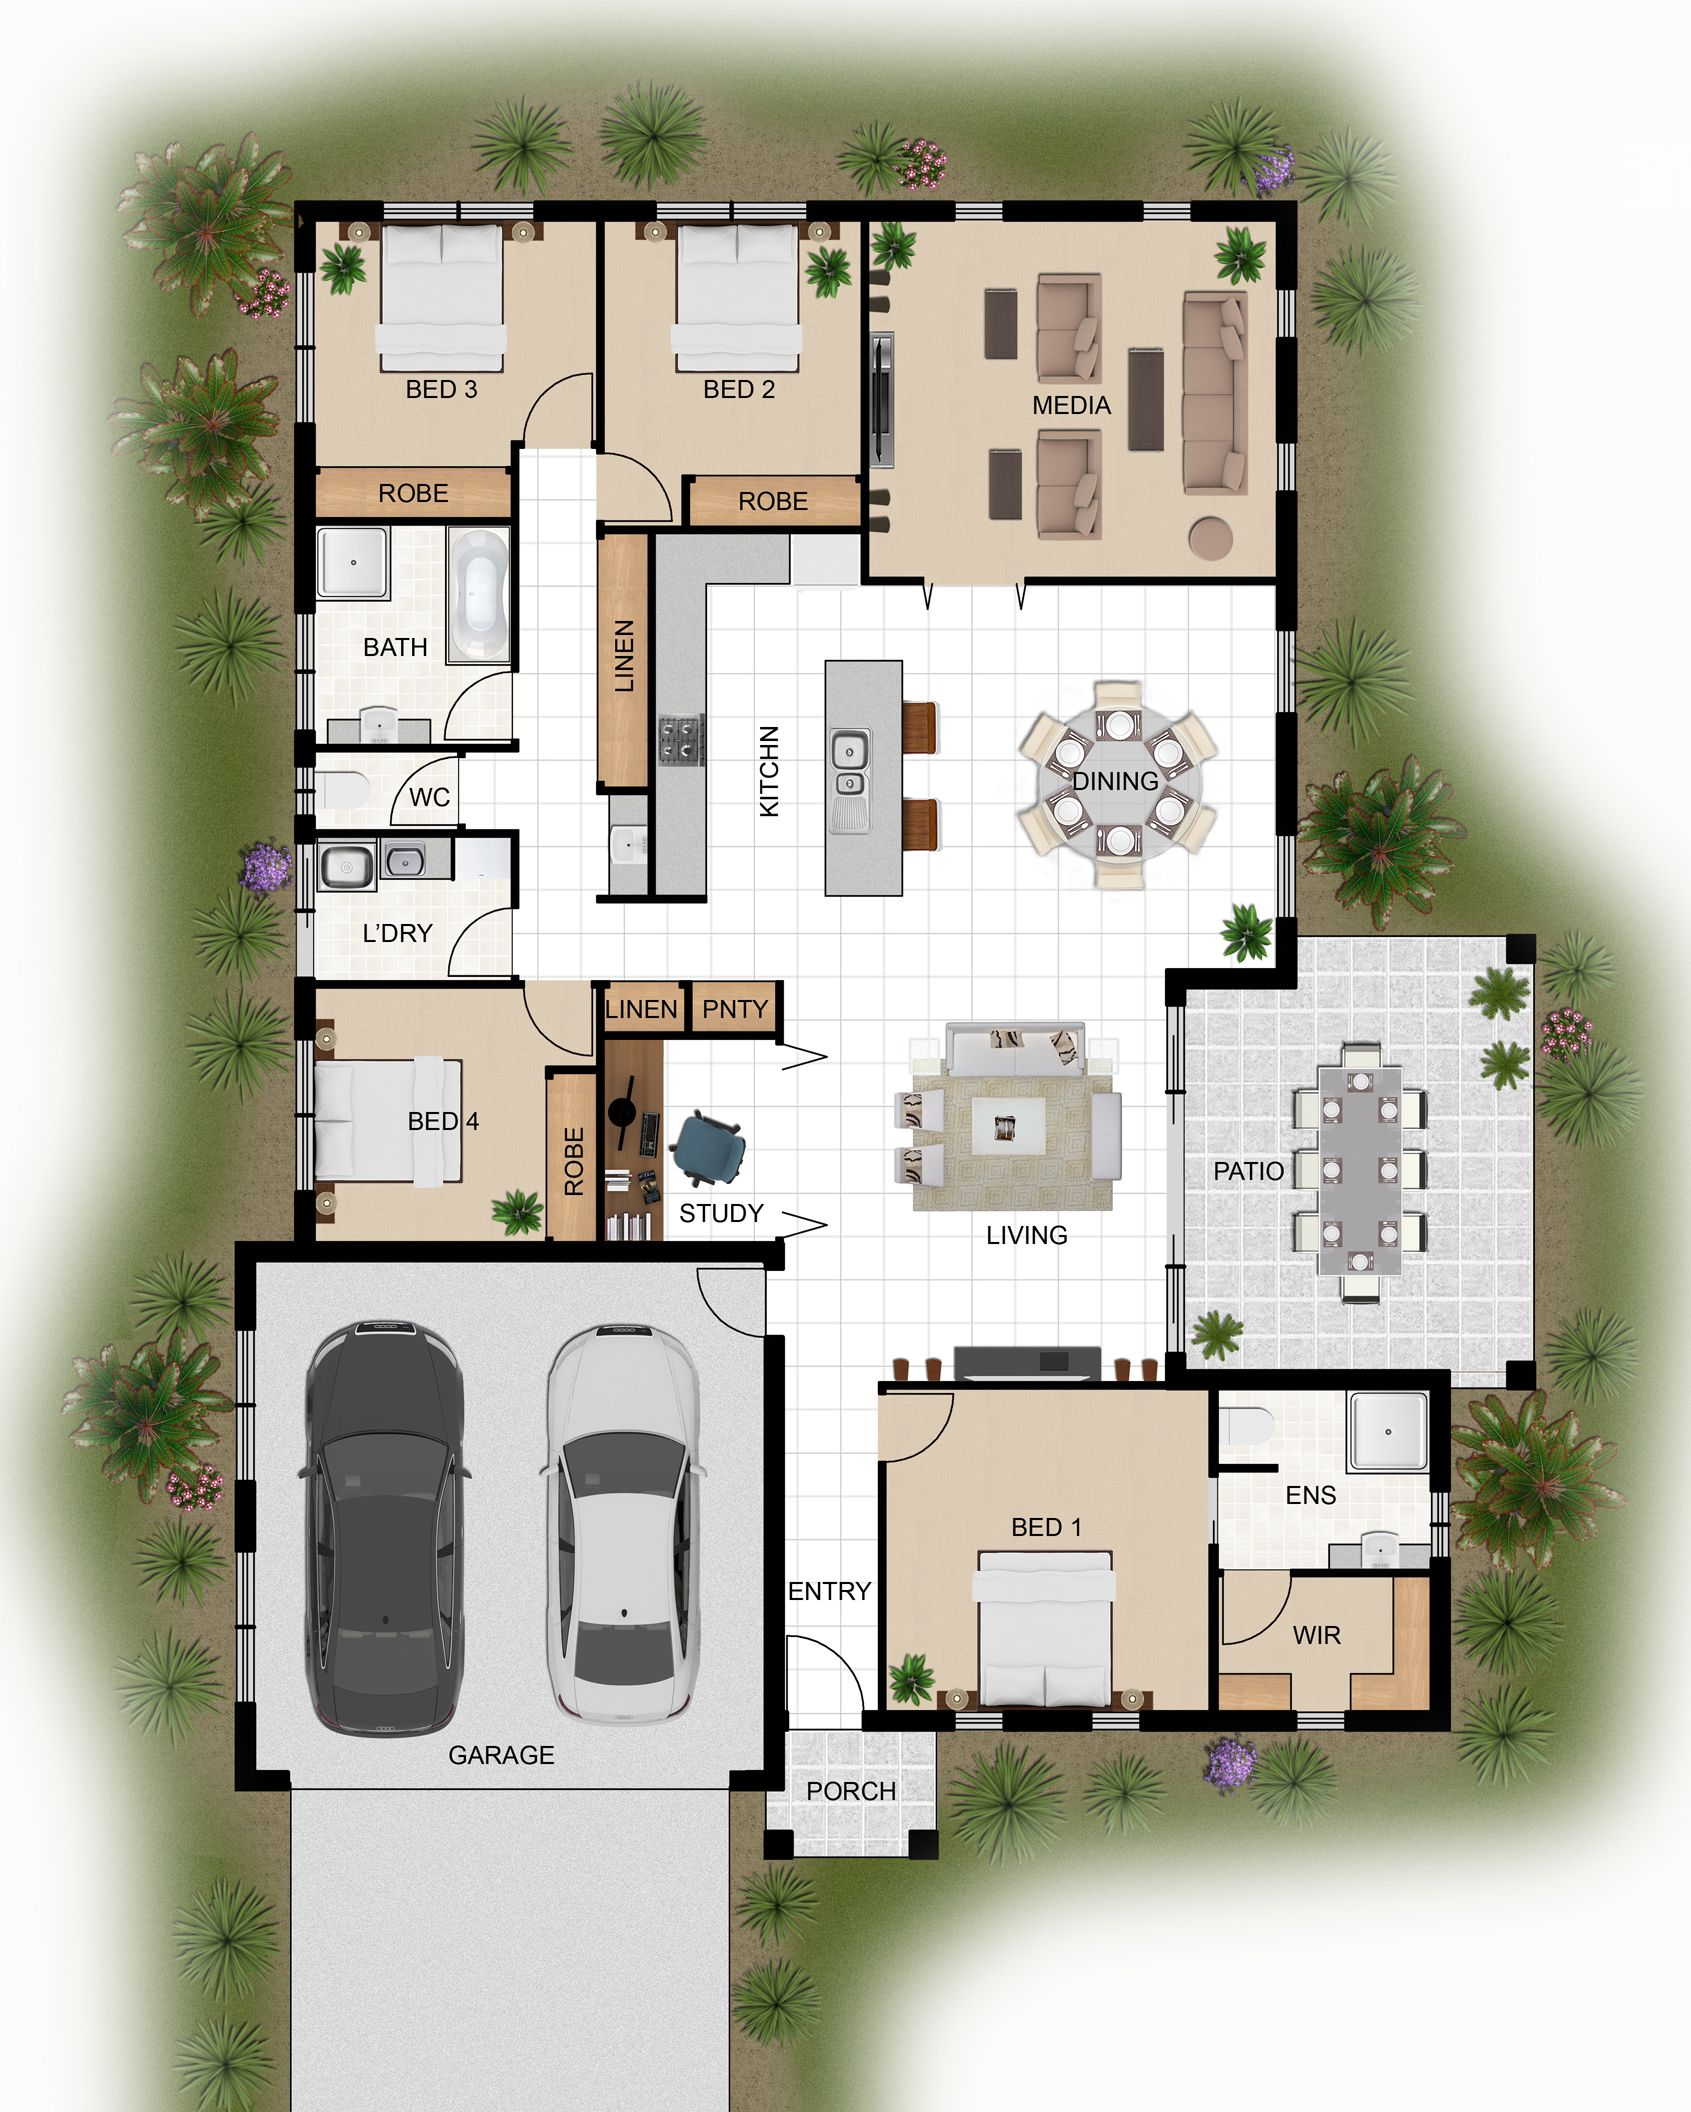 Australia 39 S Leading 3d Architectural Visualisation And Rendering Company Specialising In 3d Architectural Floor Plans House Floor Plans House Layout Plans